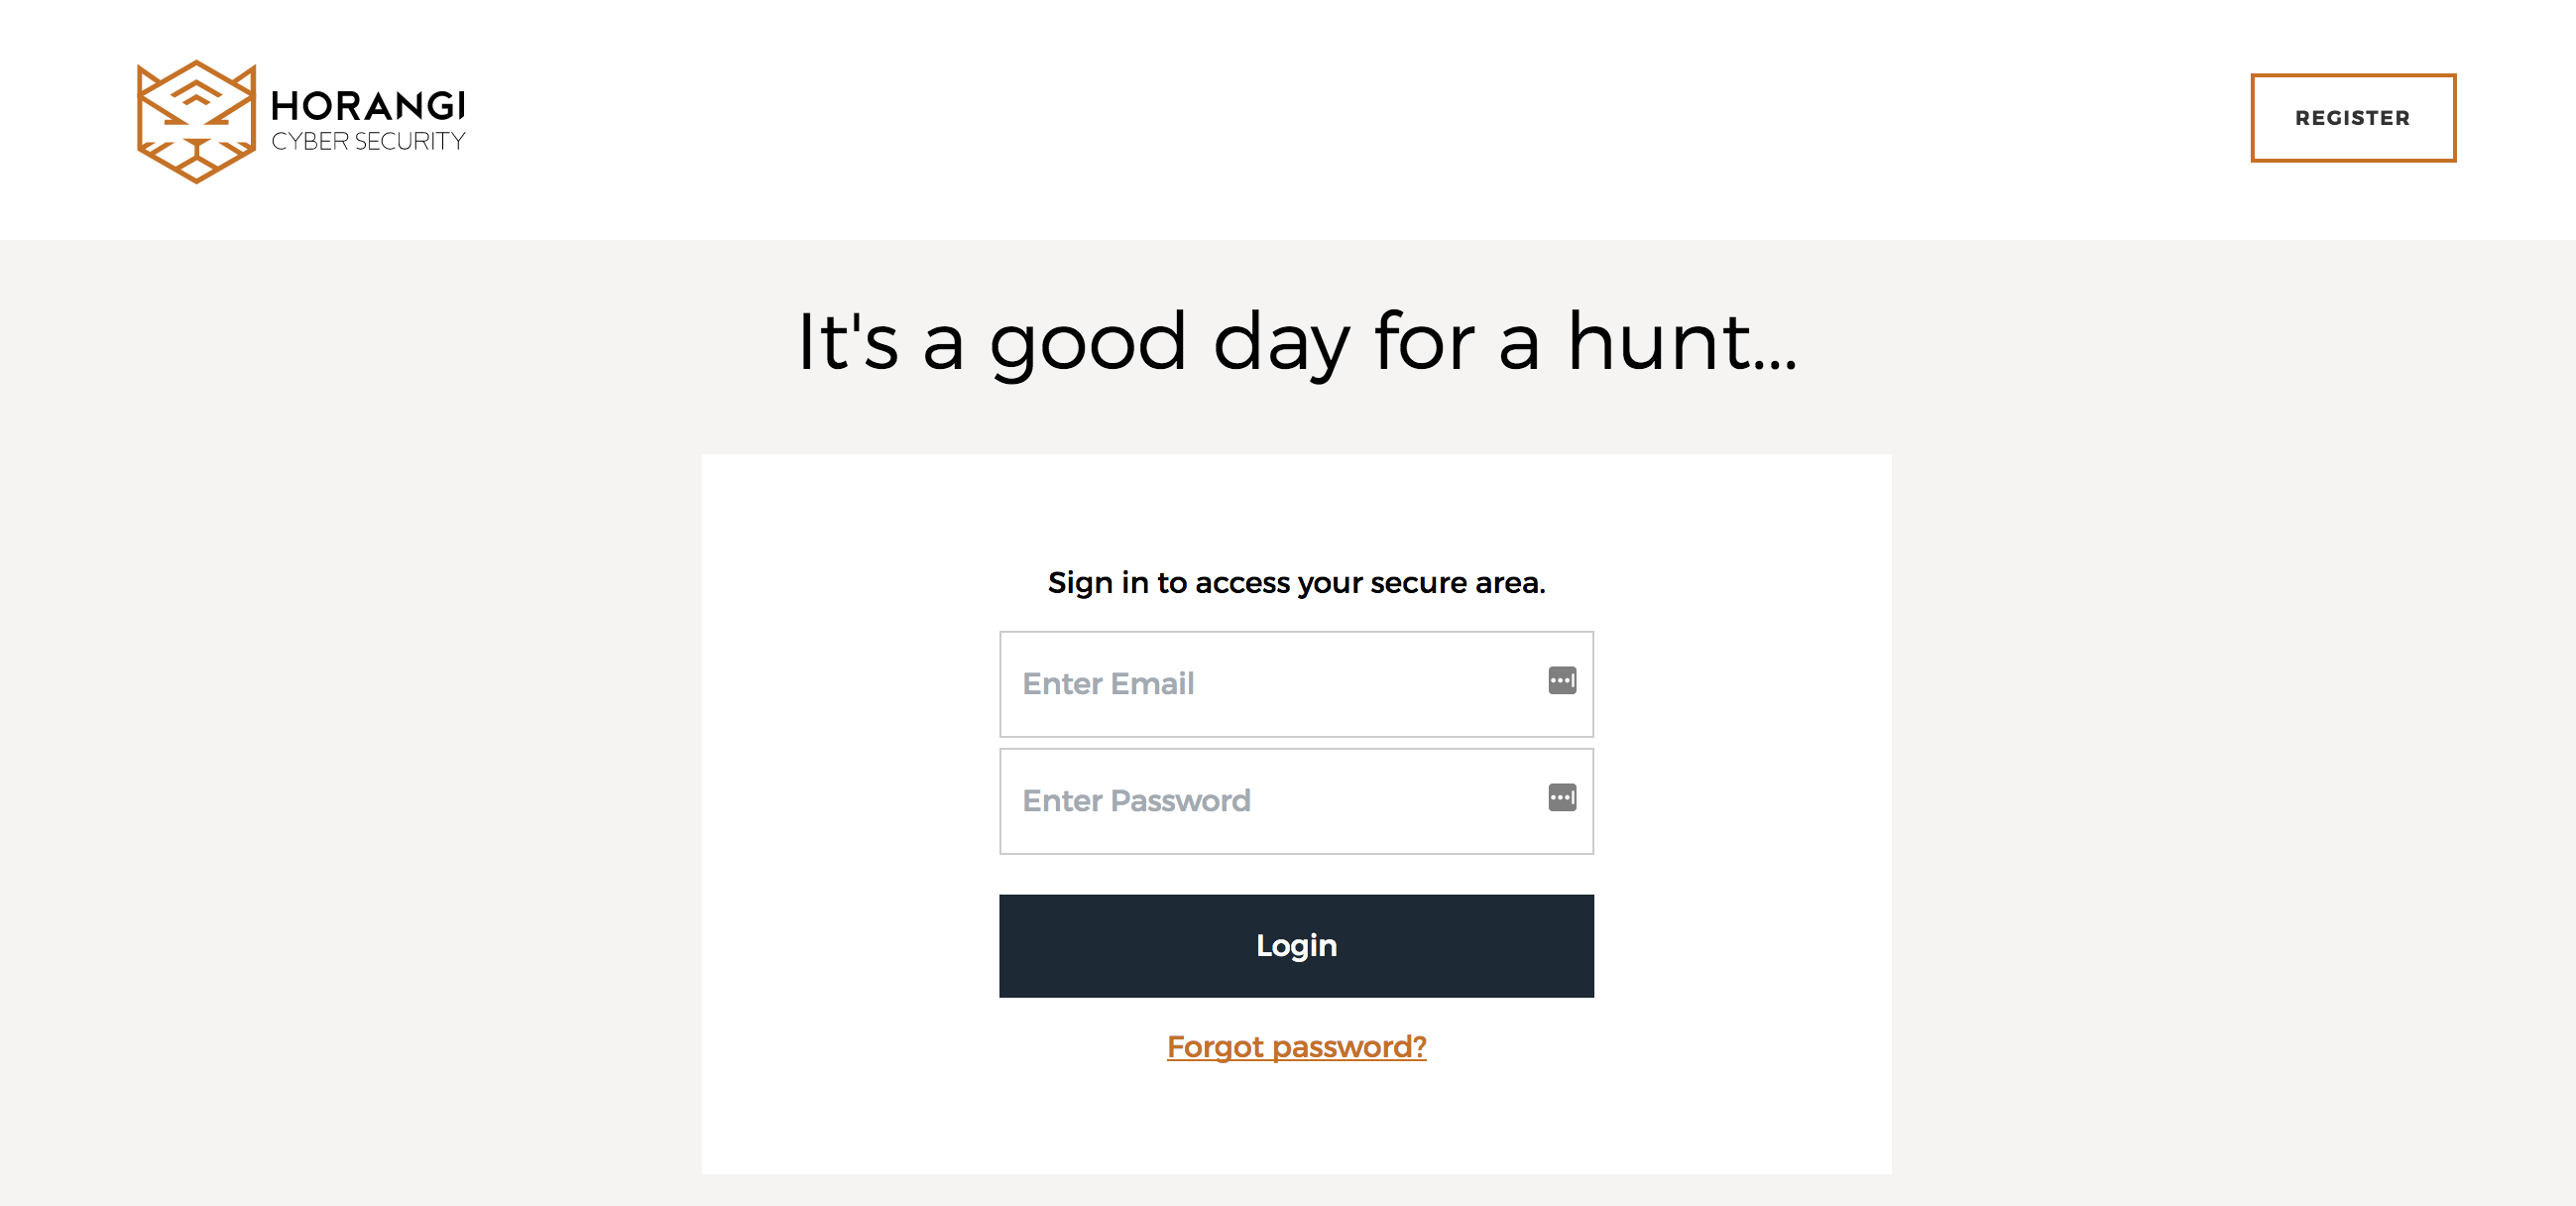 The Horangi login page